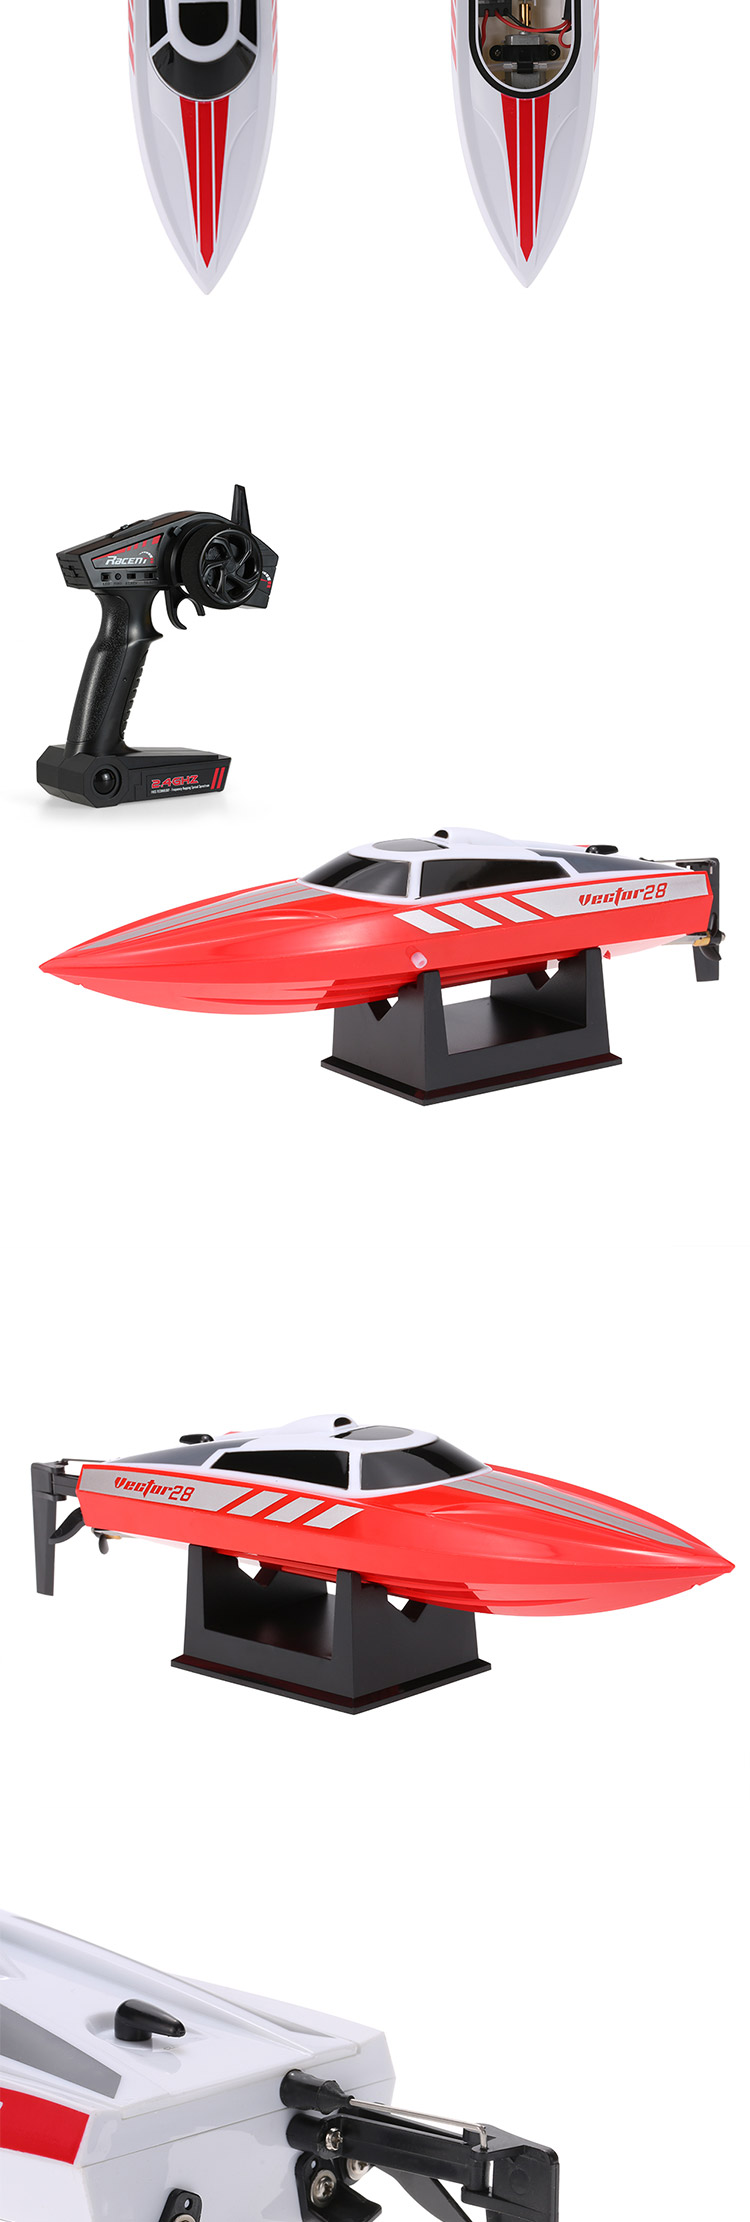 Perfect Toy for Pools and Lakes Remote Control Water Speed Boat for sale